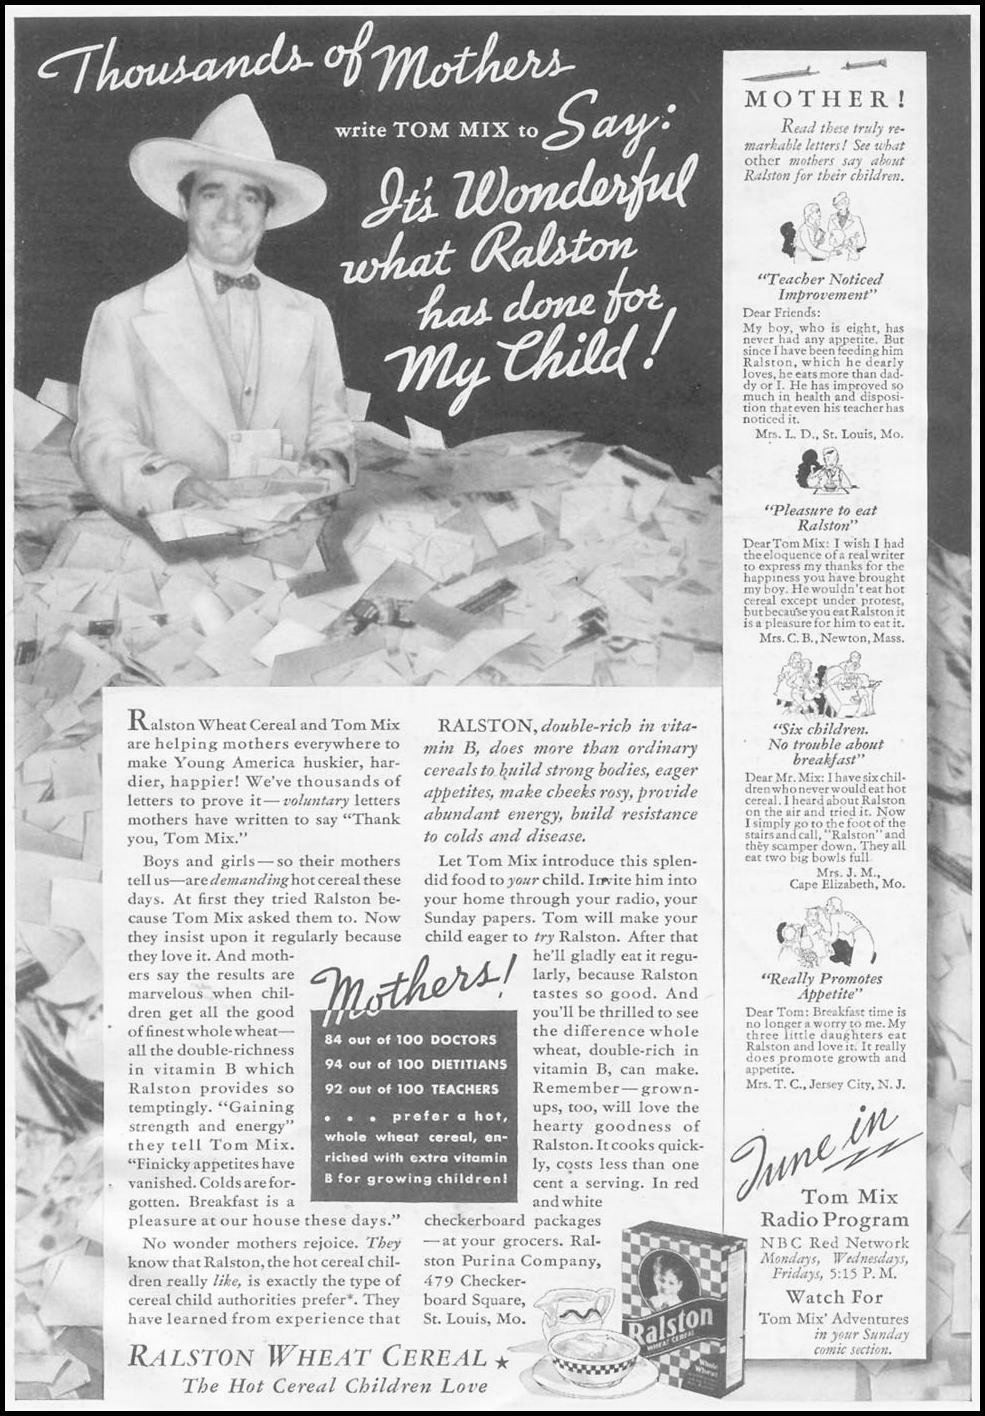 RALSTON WHEAT CEREAL